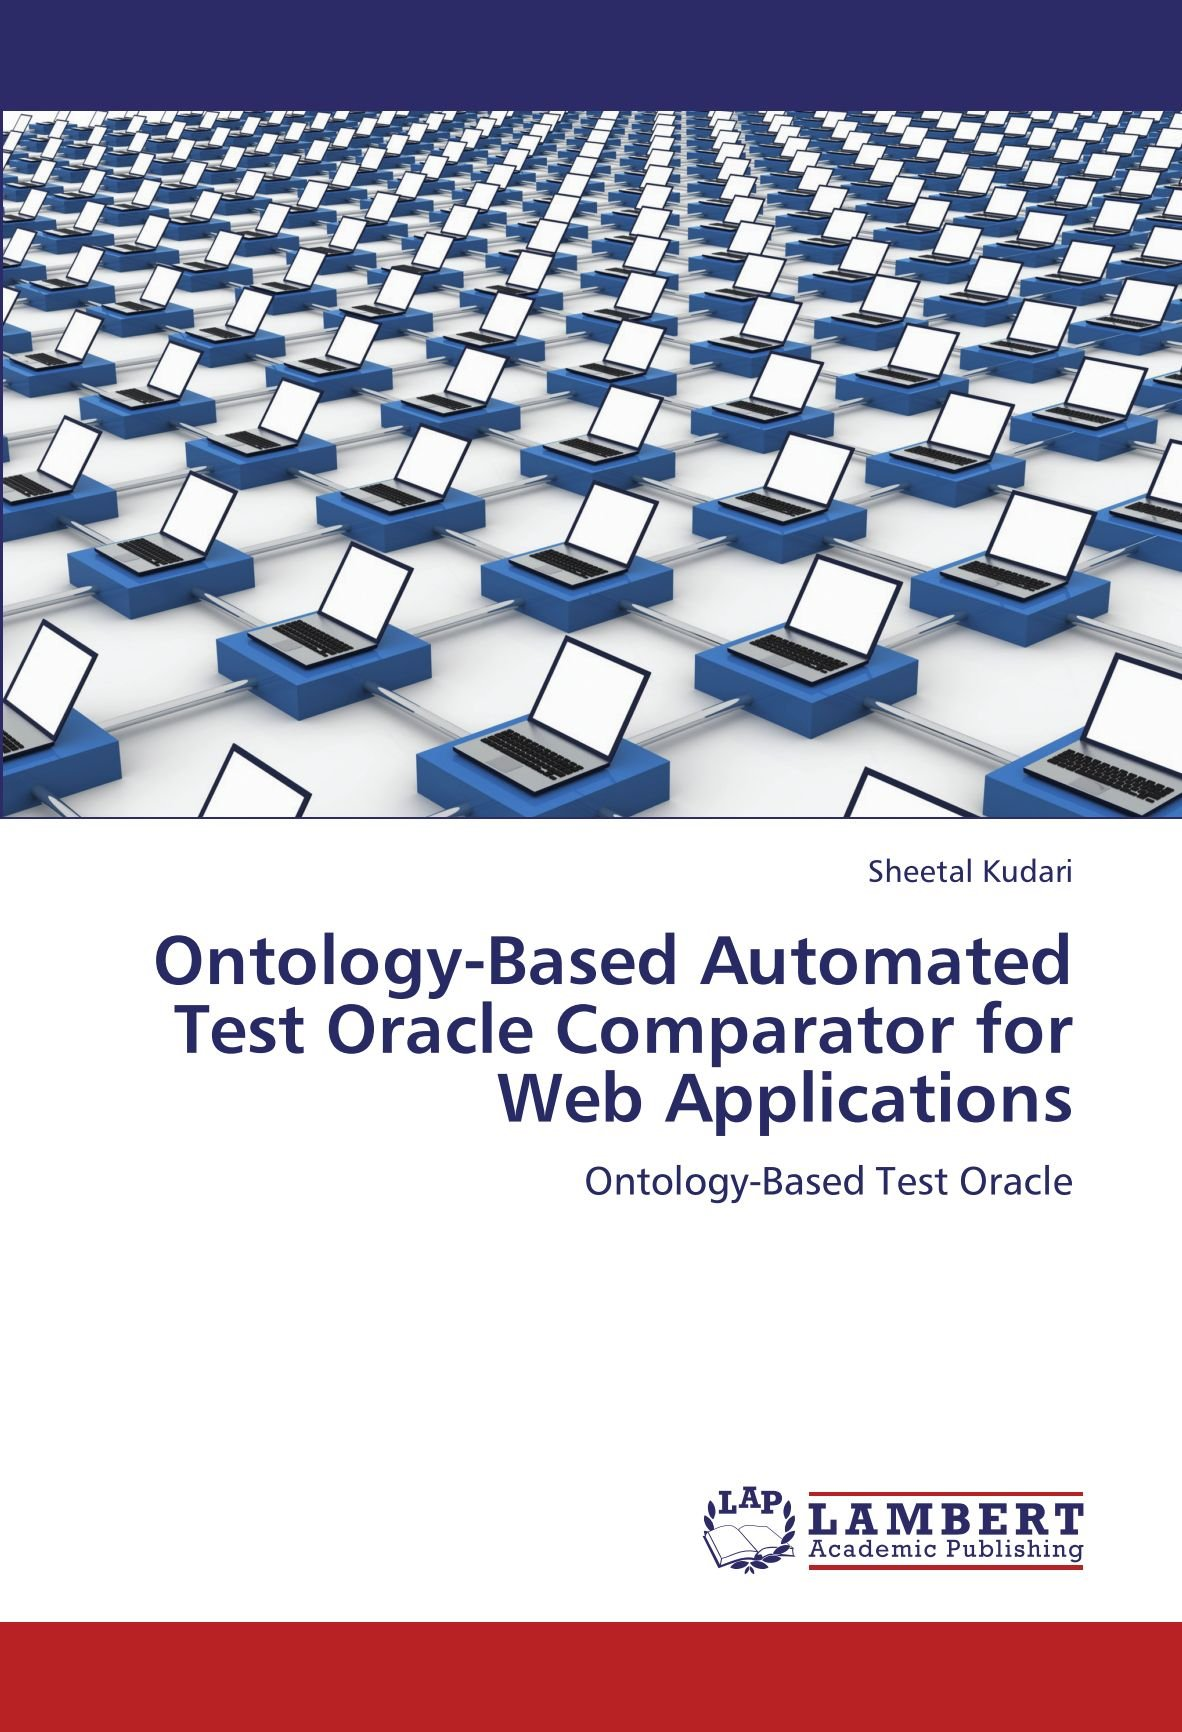 Download Ontology-Based Automated Test Oracle Comparator for Web Applications: Ontology-Based Test Oracle PDF